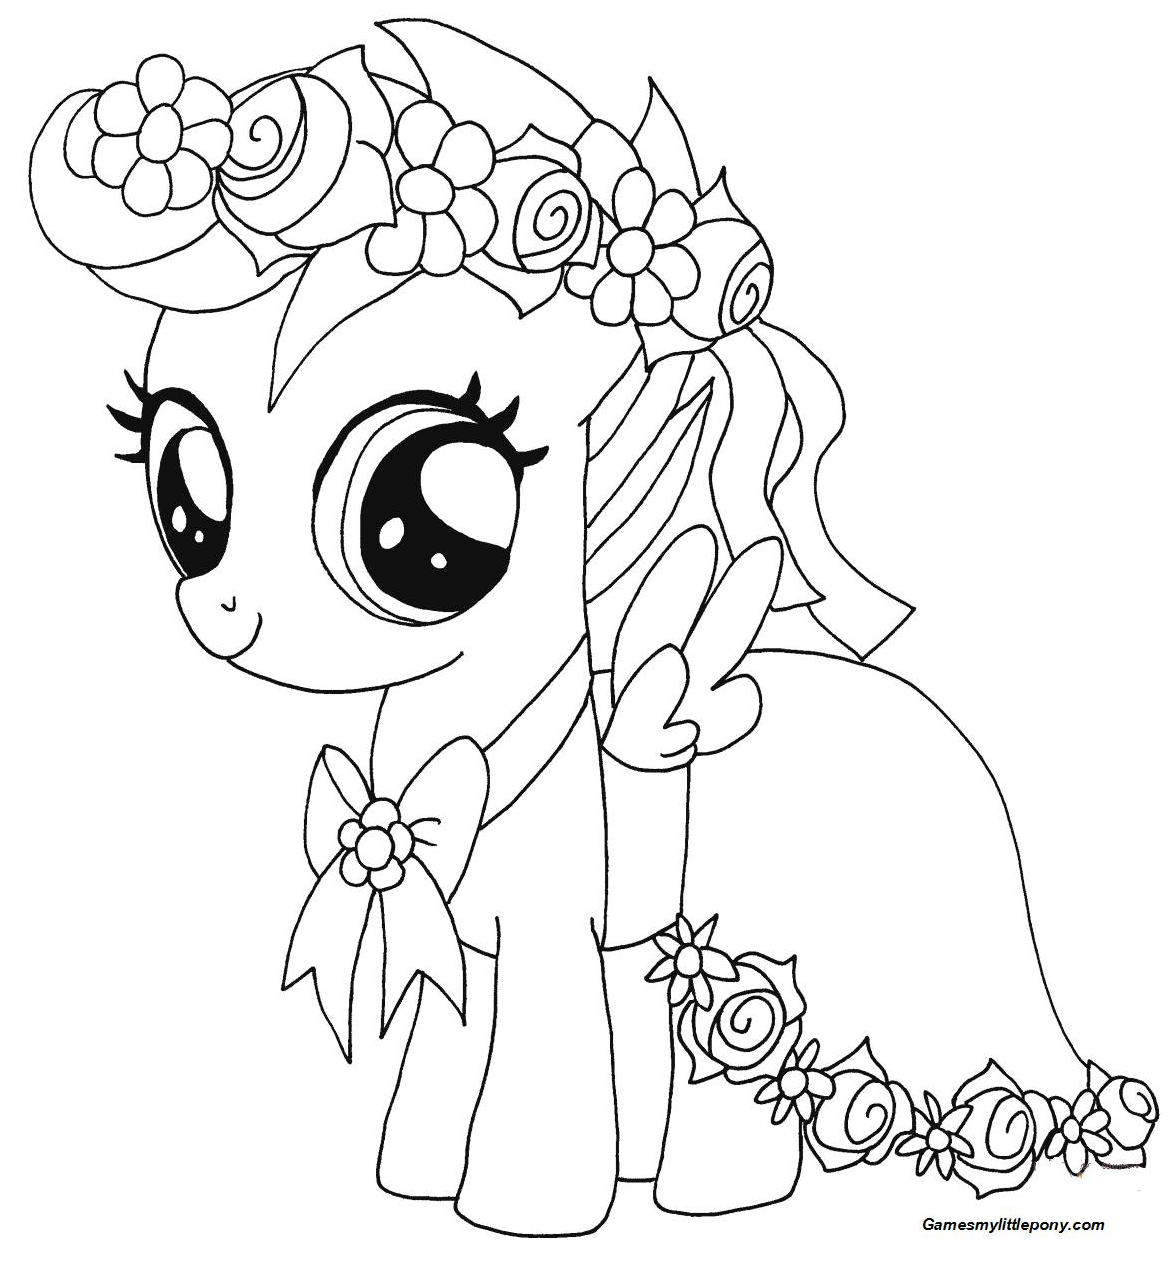 My Little Pony Scootaloo from My Little Pony  Coloring Page